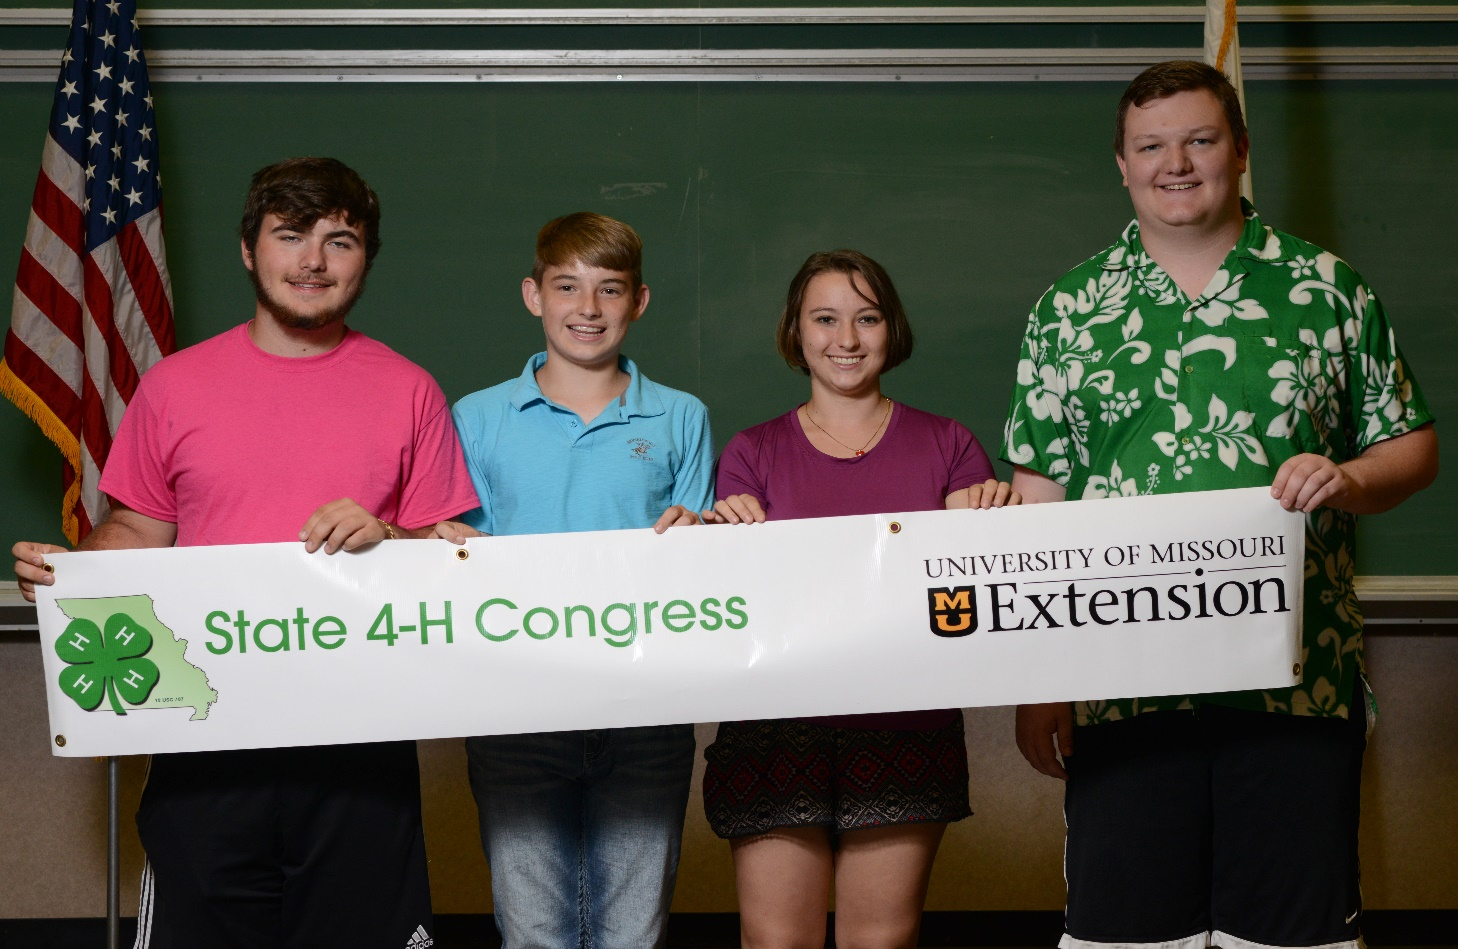 4-H members flock to gain skills, one gains leadership role